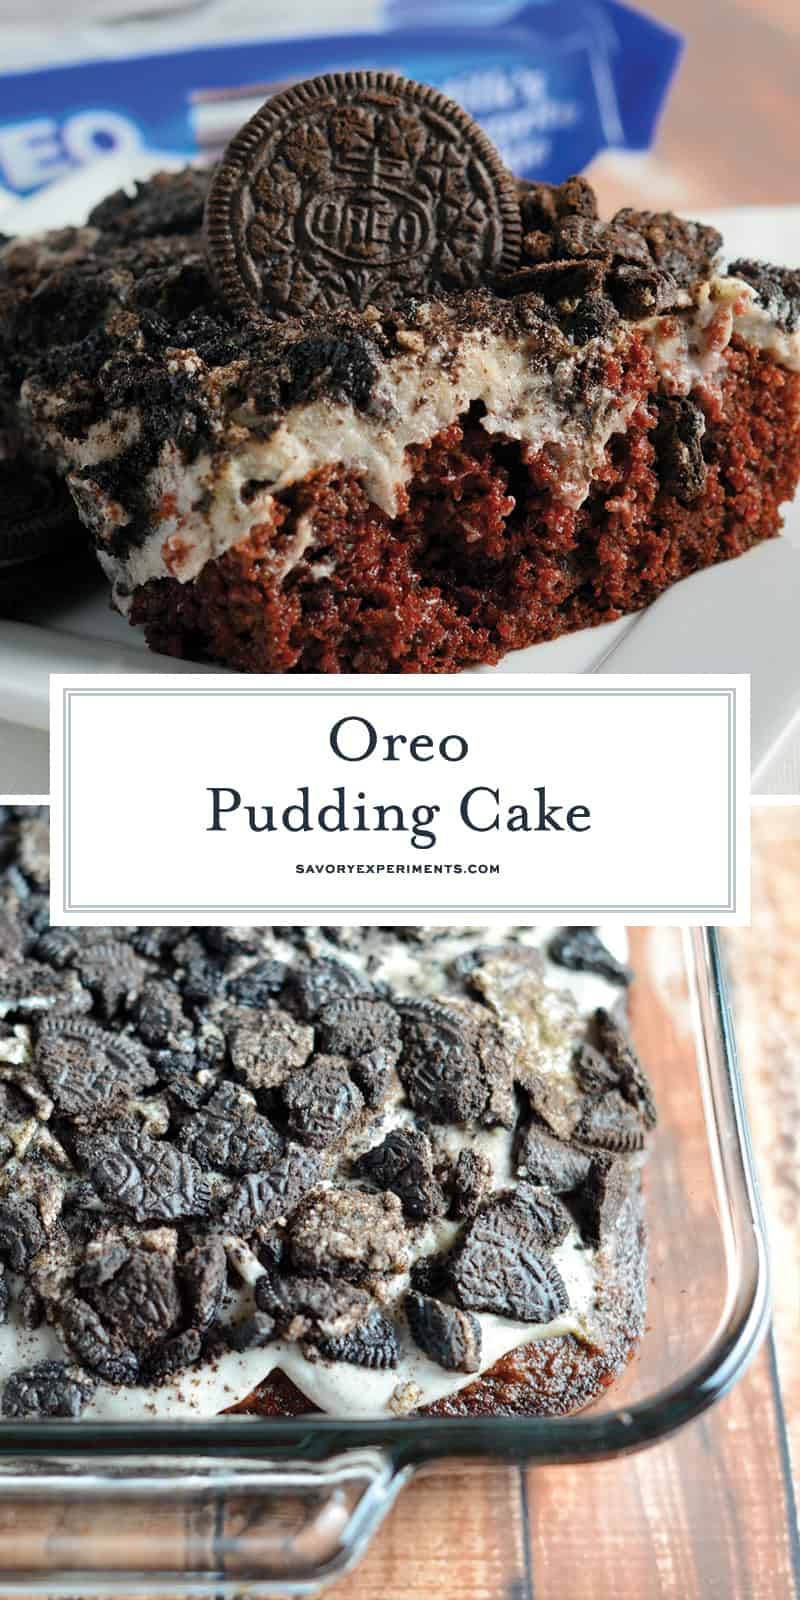 Oreo Pudding Cake is a poke recipe perfect for an easy party dessert. If you like Oreo balls, you'll love this easy cake recipe! #oreocookierecipes #oreopuddingcake #pokecakerecipes www.savoryexperiments.com